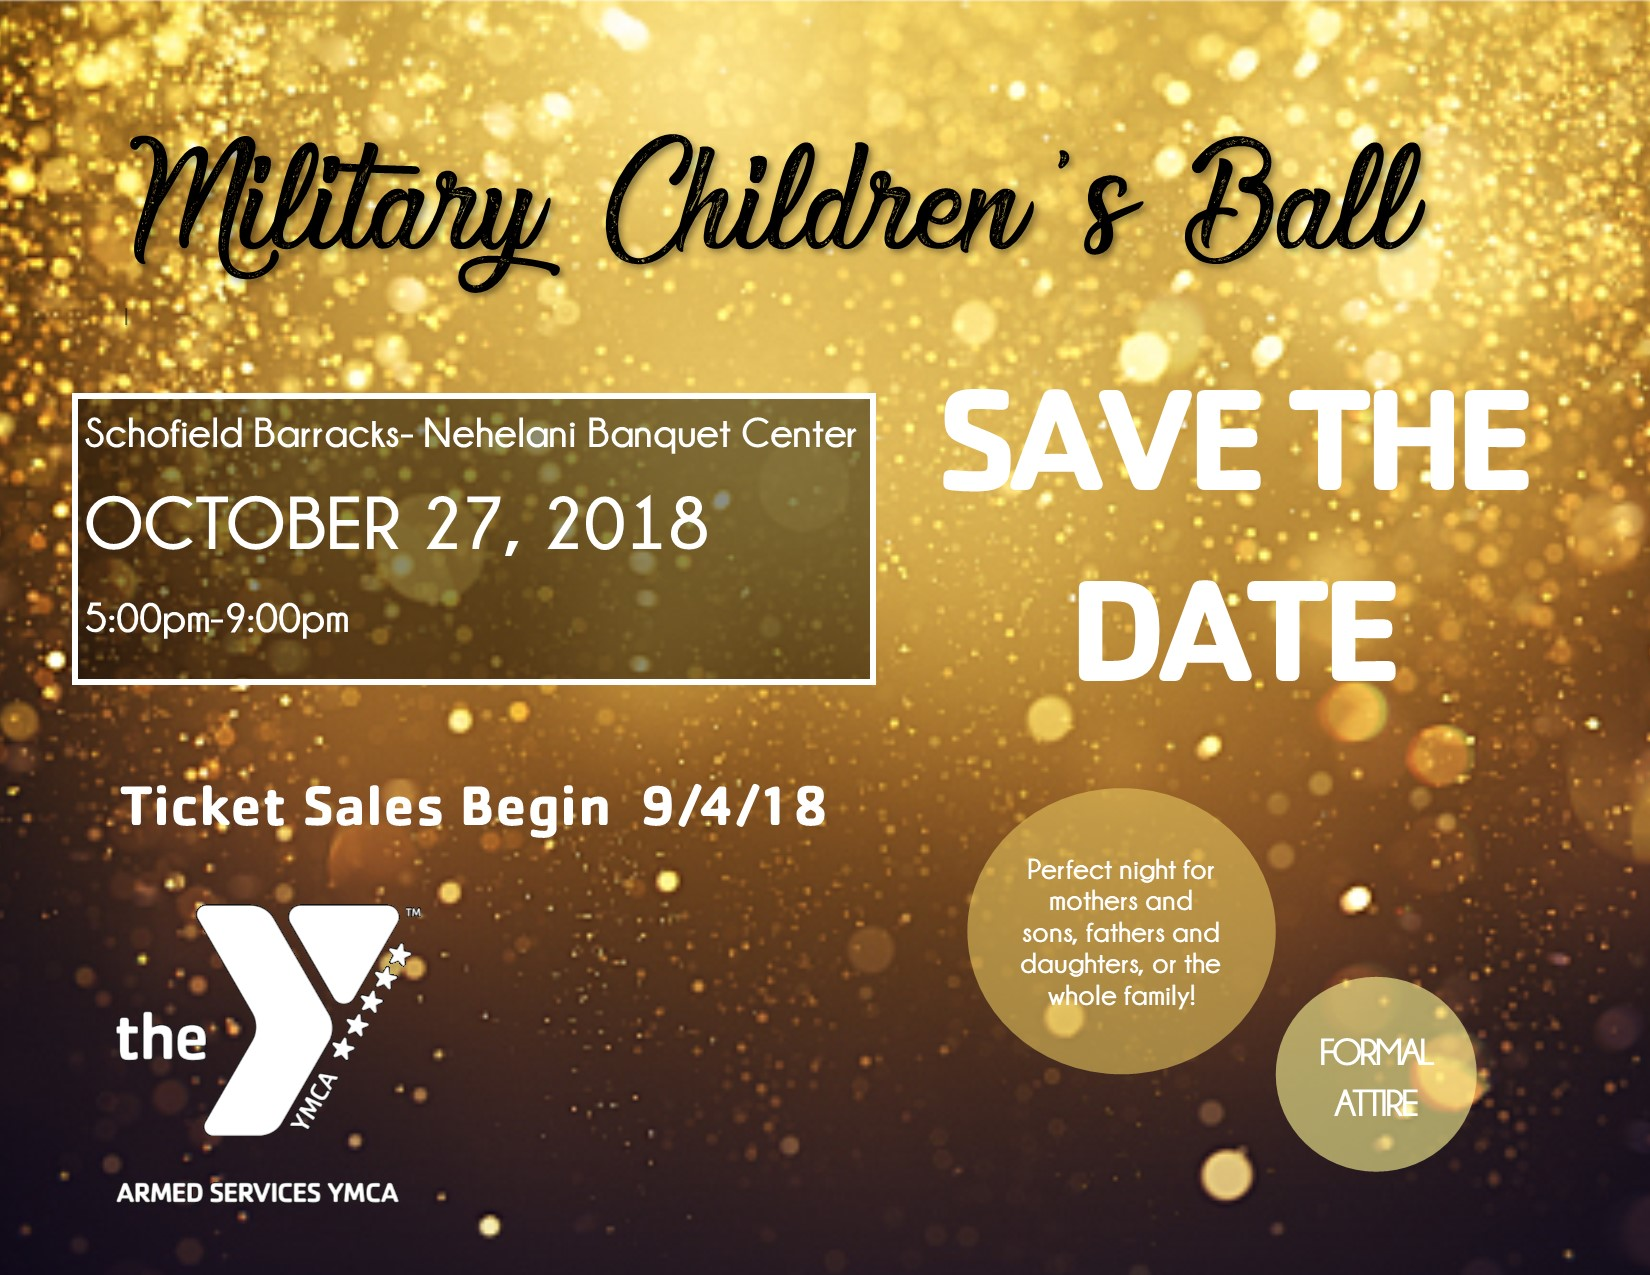 Save the Date Military Children's Ball Website